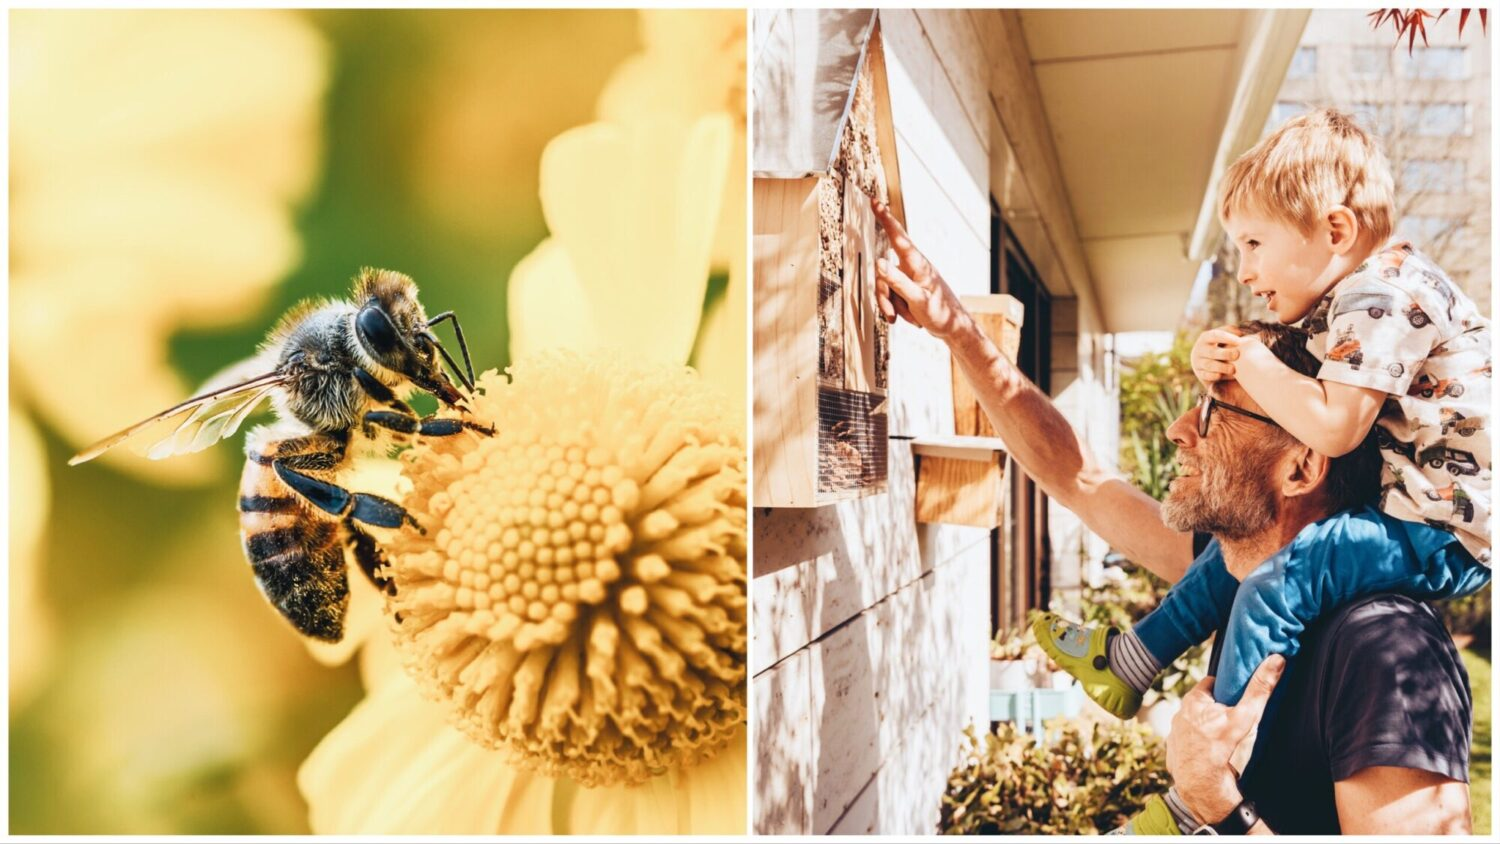 Mini Hotels, Bus Shelters, and 5 Other Initiatives Saving the Bees